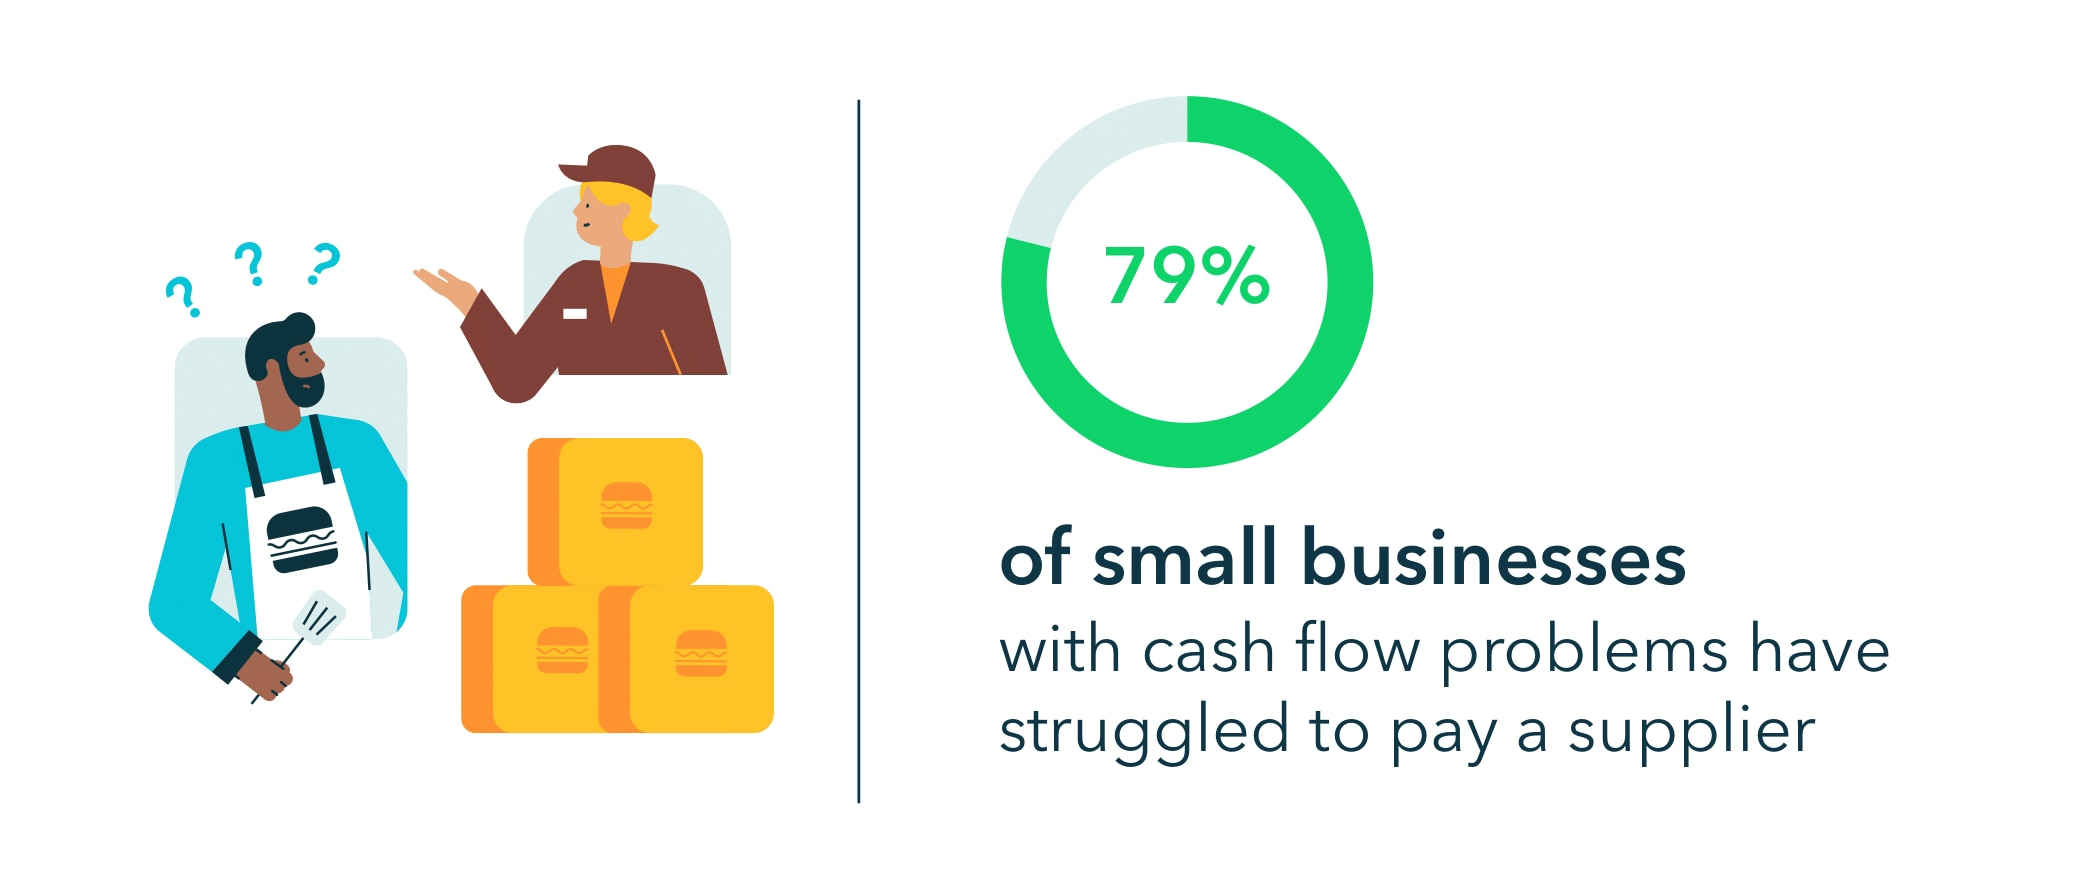 79% of small businesses with cash flow problems have struggled to pay a supplier.